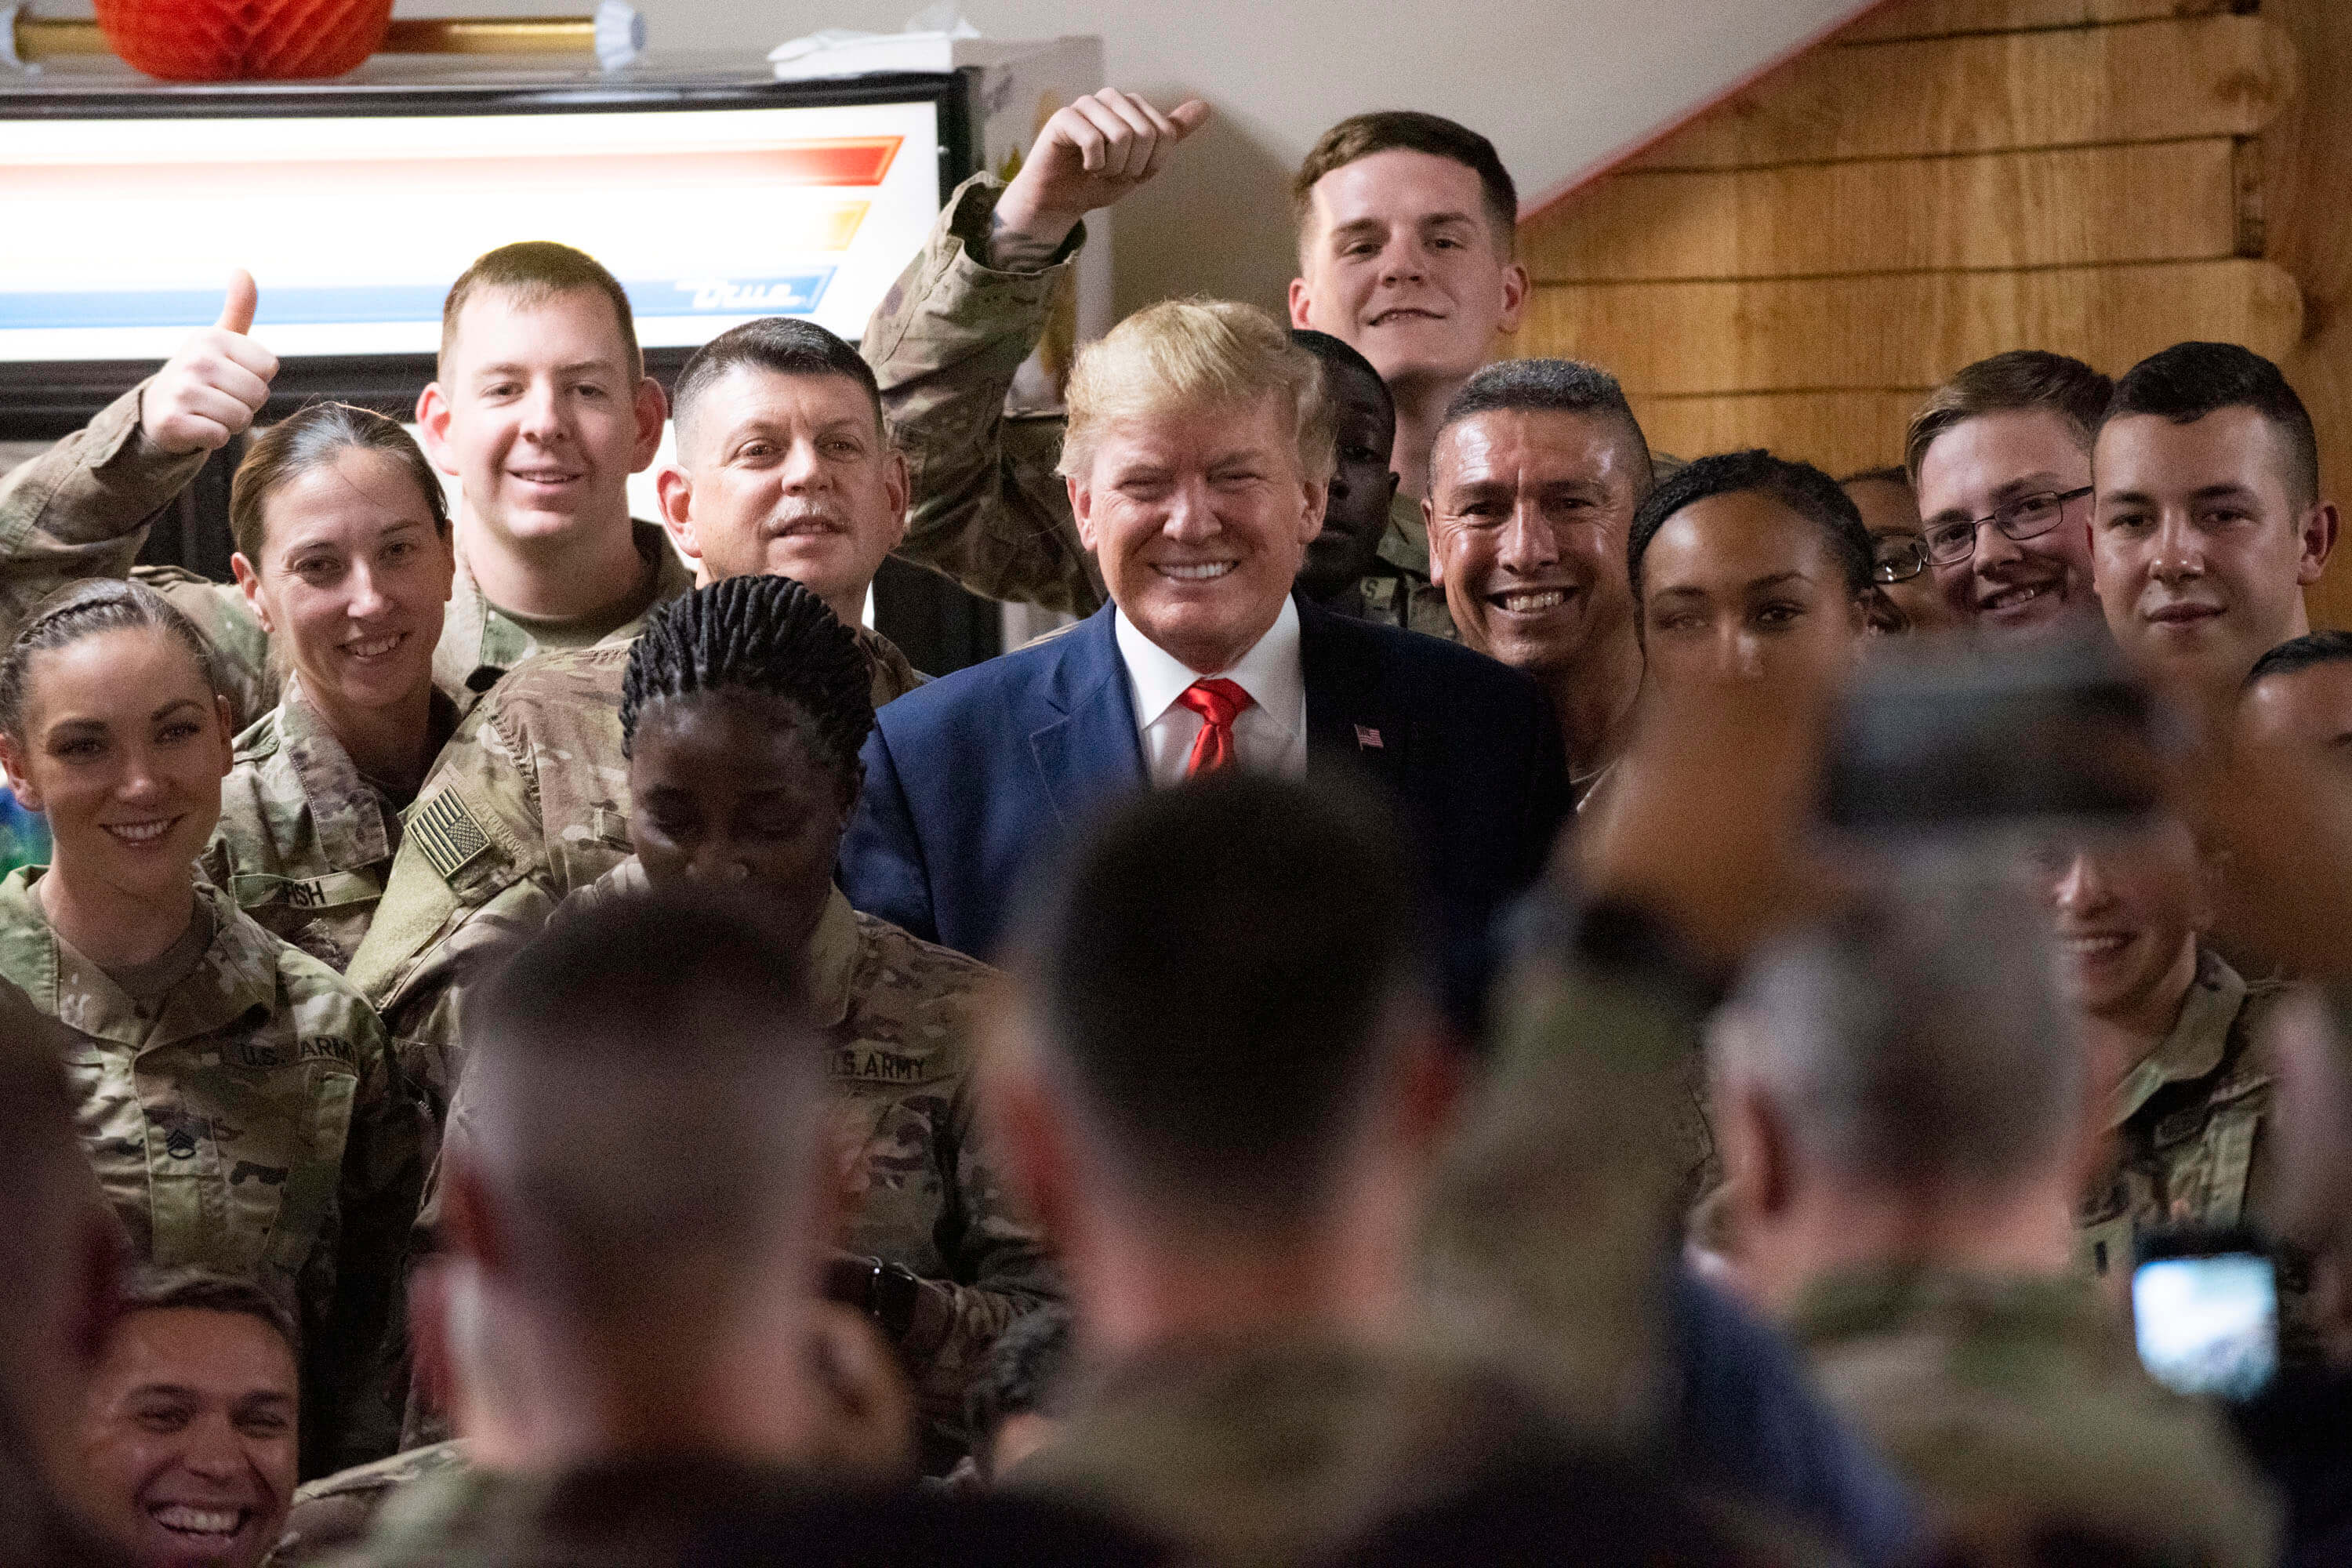 President of the United States Donald J. Trump meet with service members at Bagram Airfield in Afghanistan in November 2019. ©  Chairman of the Joint Chiefs of Staff/Flickr